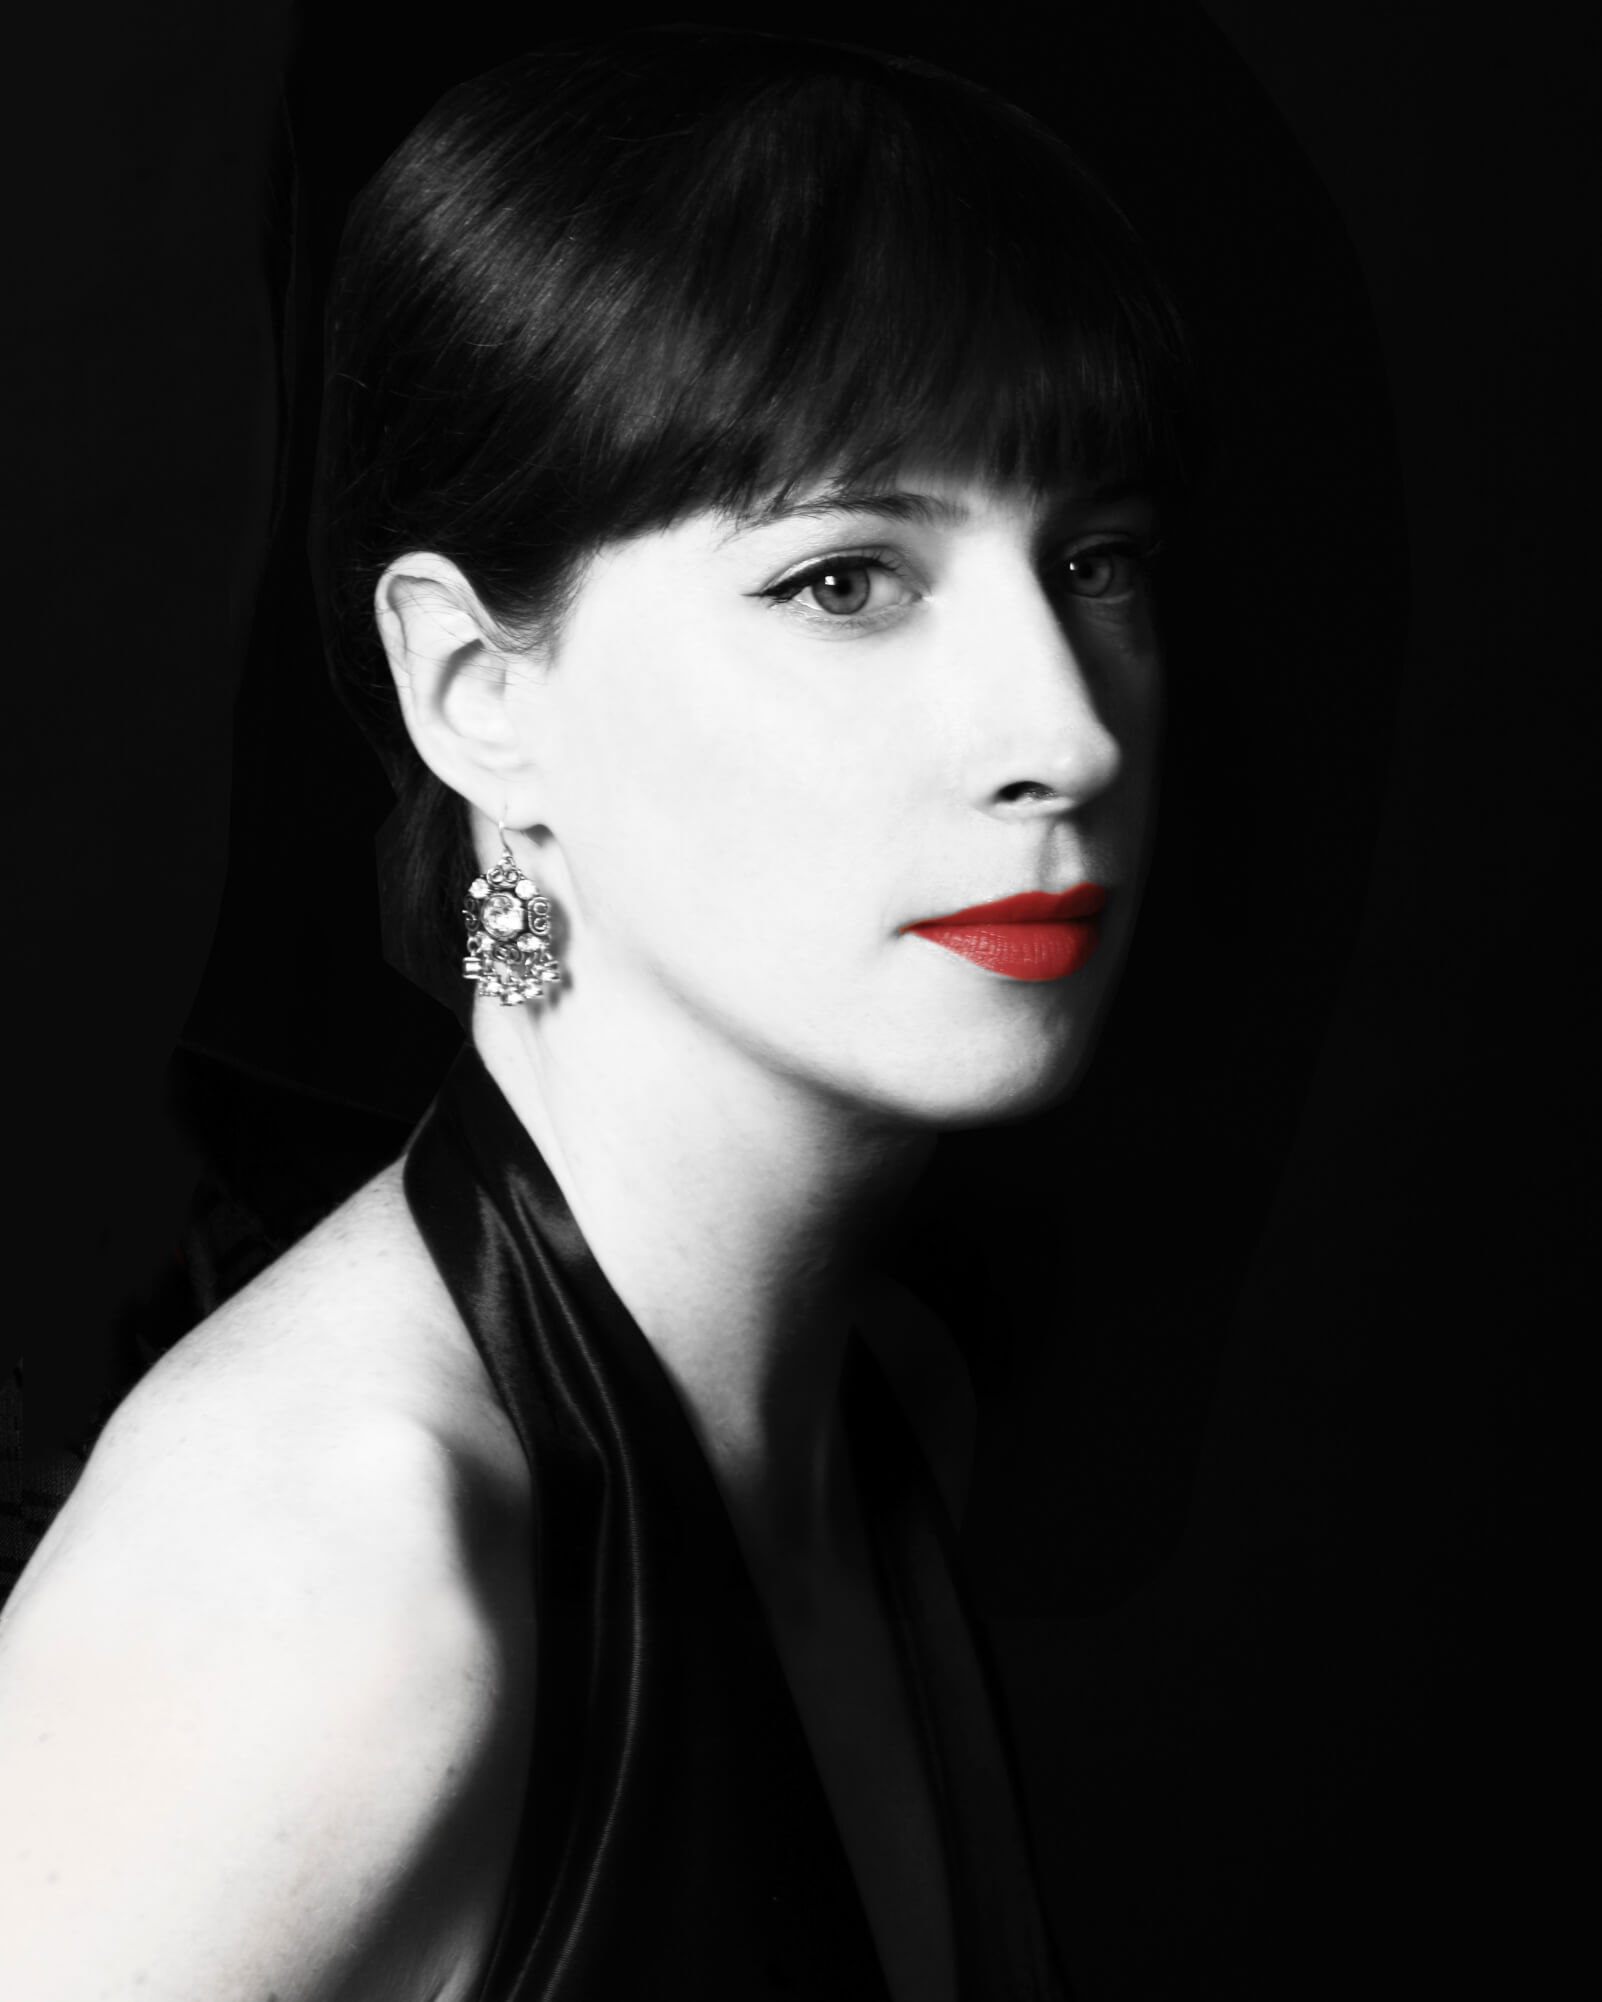 Violinist and artist director Madeleine Easton. Dramatic black and white photo with bright red lipstick